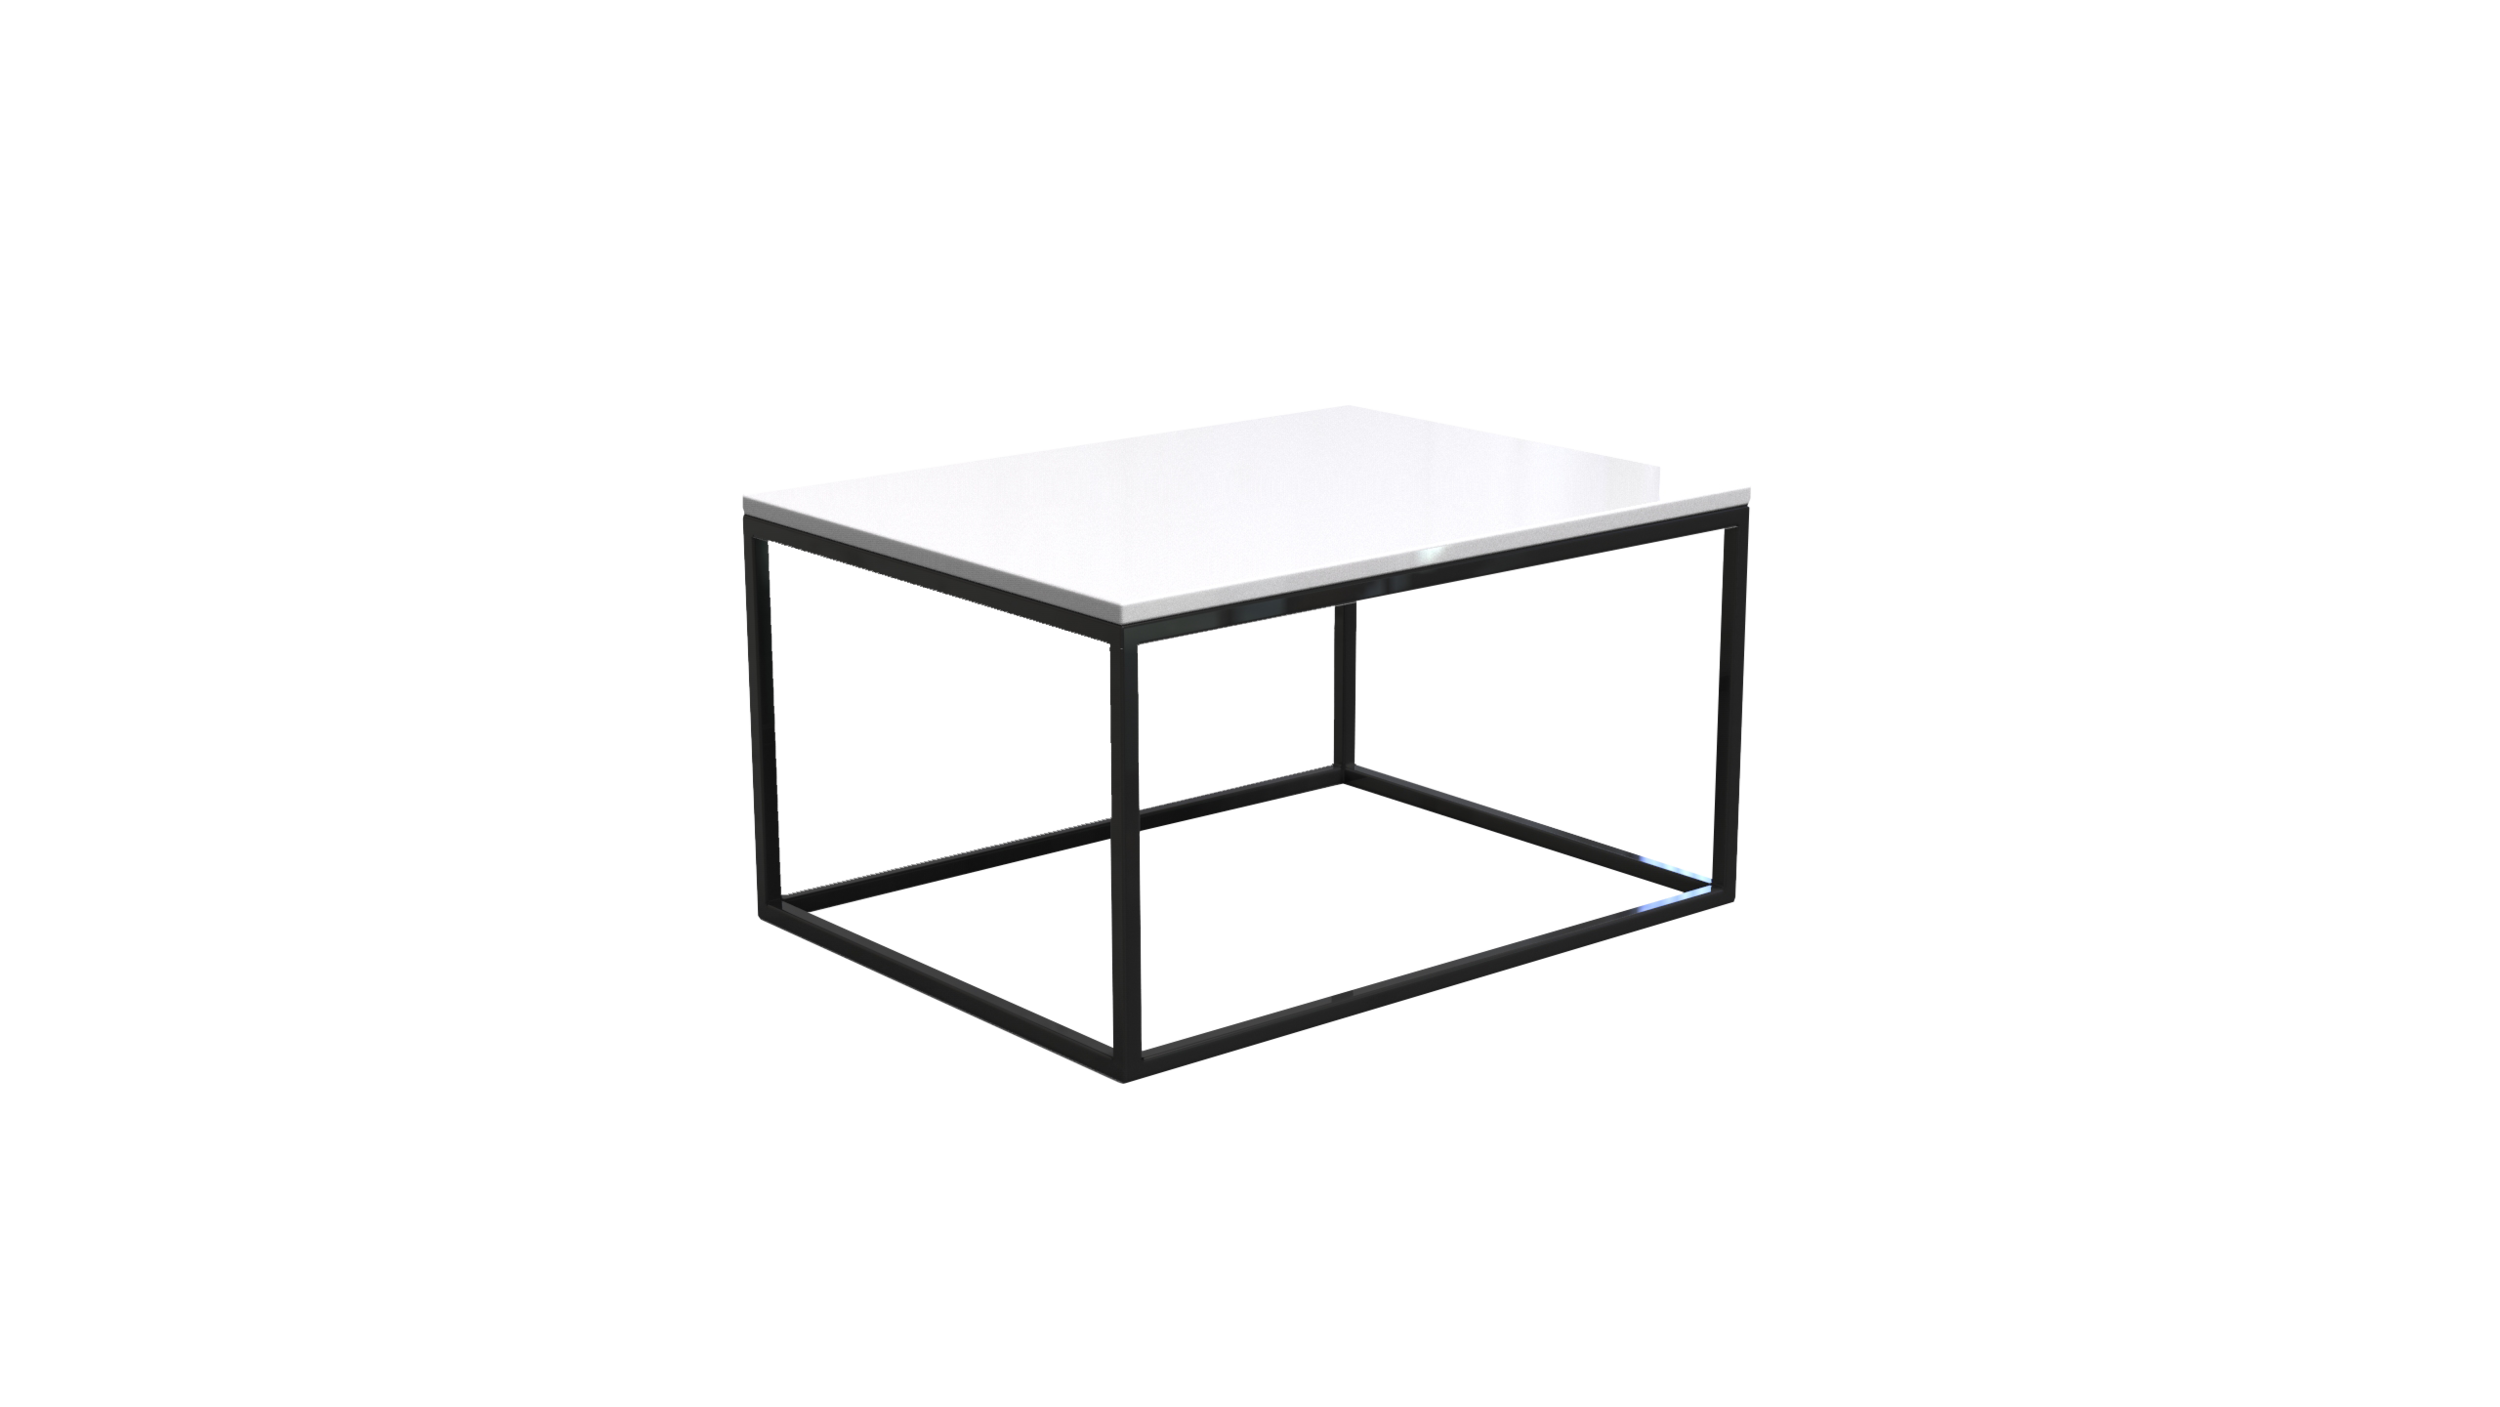 Coffee Table no background.png